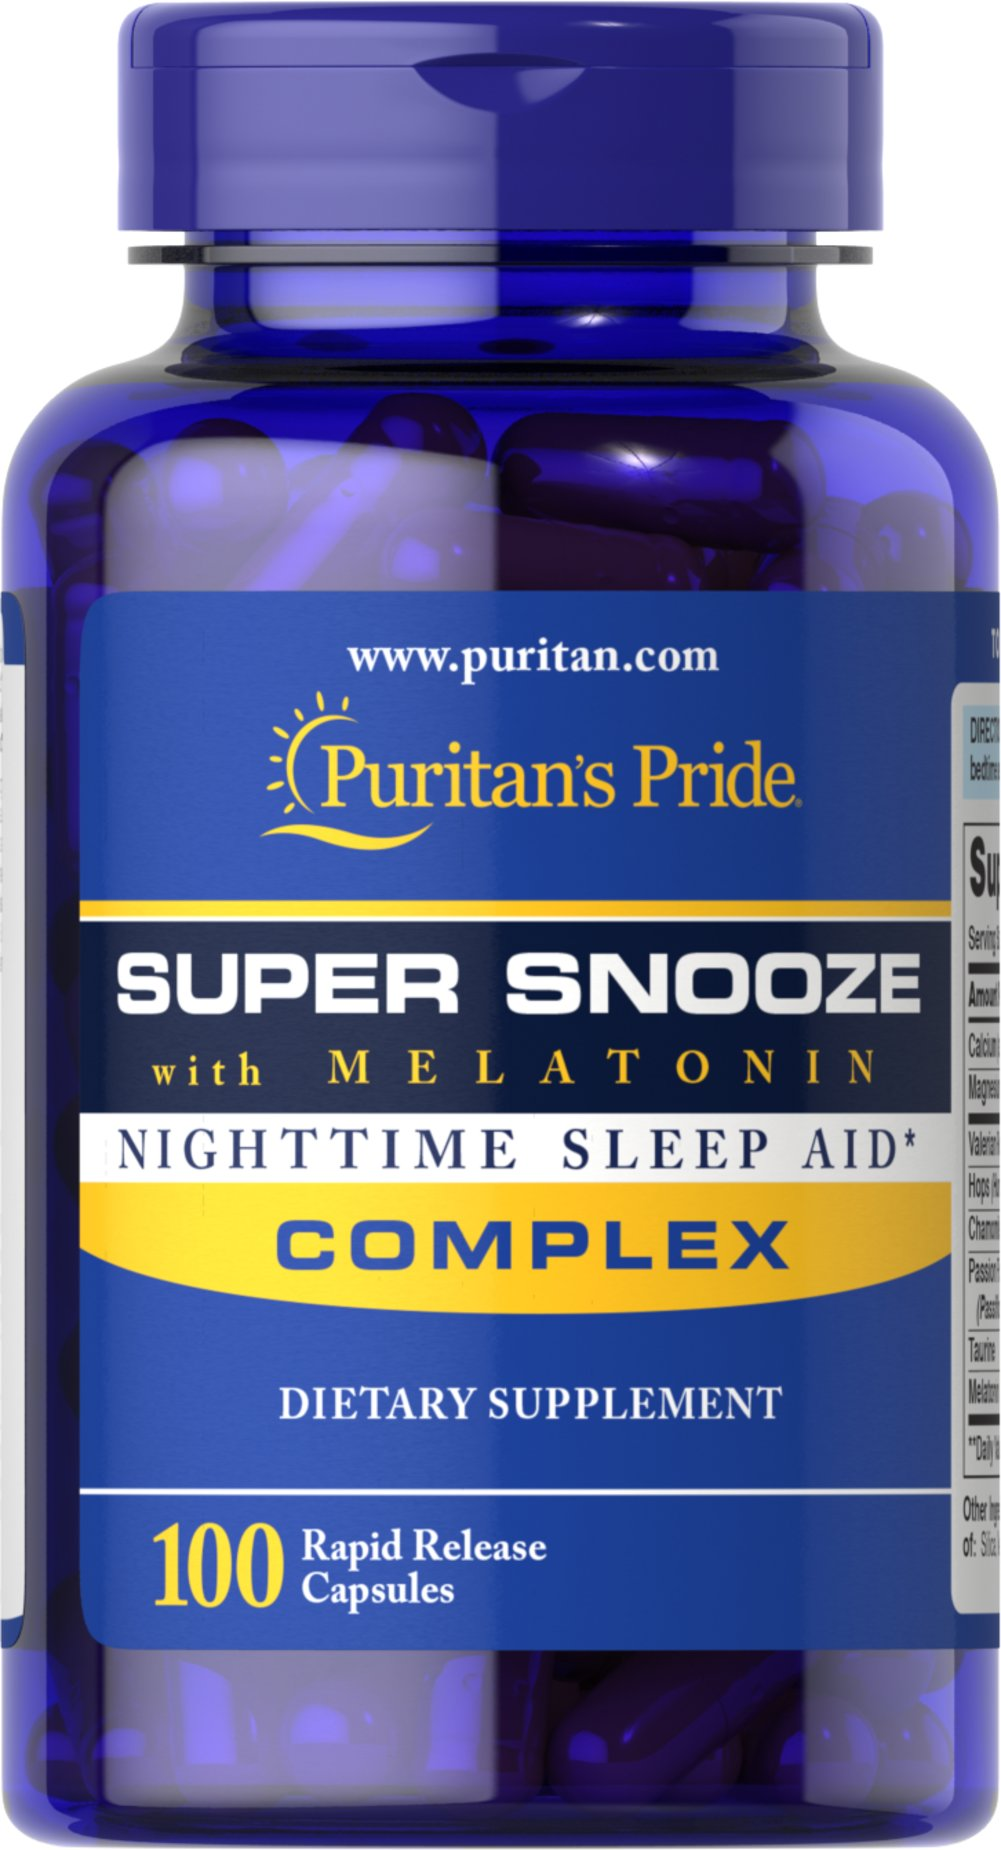 Super Snooze with Melatonin <p>Super Snooze with Melatonin works in harmony with your natural sleep cycle to give you the tranquil rest you deserve, so you can awaken feeling refreshed.** Super Snooze with Melatonin is perfect for people experiencing occasional sleeplessness, those with jet lag, or anyone seeking to improve their quality of rest.** Key ingredients include Valerian Root,  Chamomile, Passion Flower and Melatonin, among others.</p> 100 Capsules  $14.39